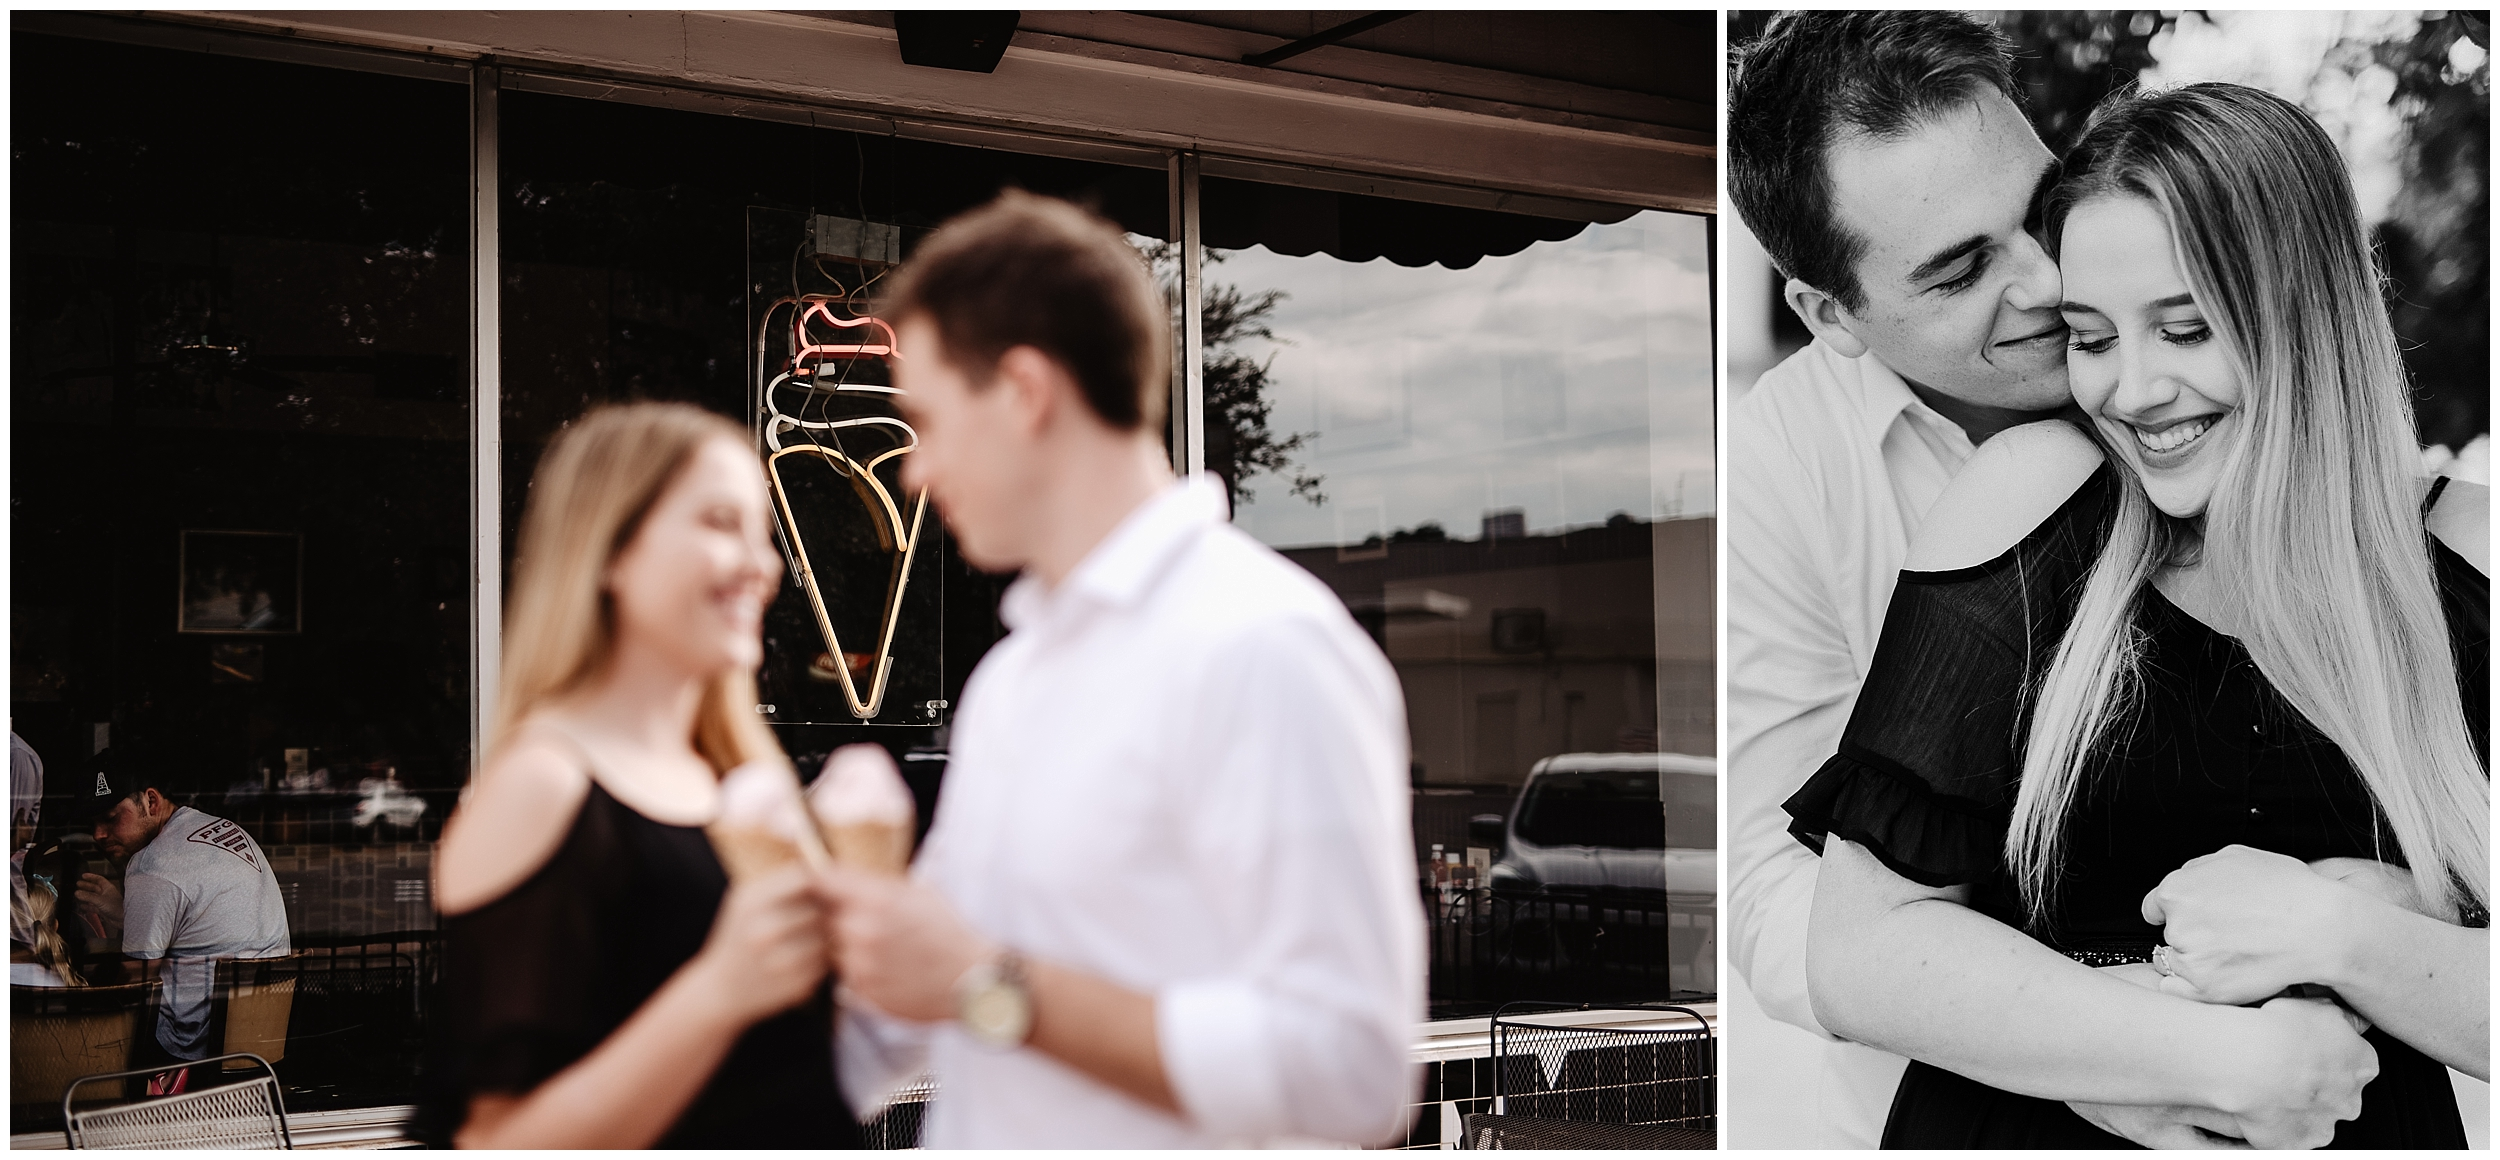 oklahoma wedding photographer date night engagement ice cream kaisers halls pizza kitchen fun shoot midtown okc  casual black white black&white